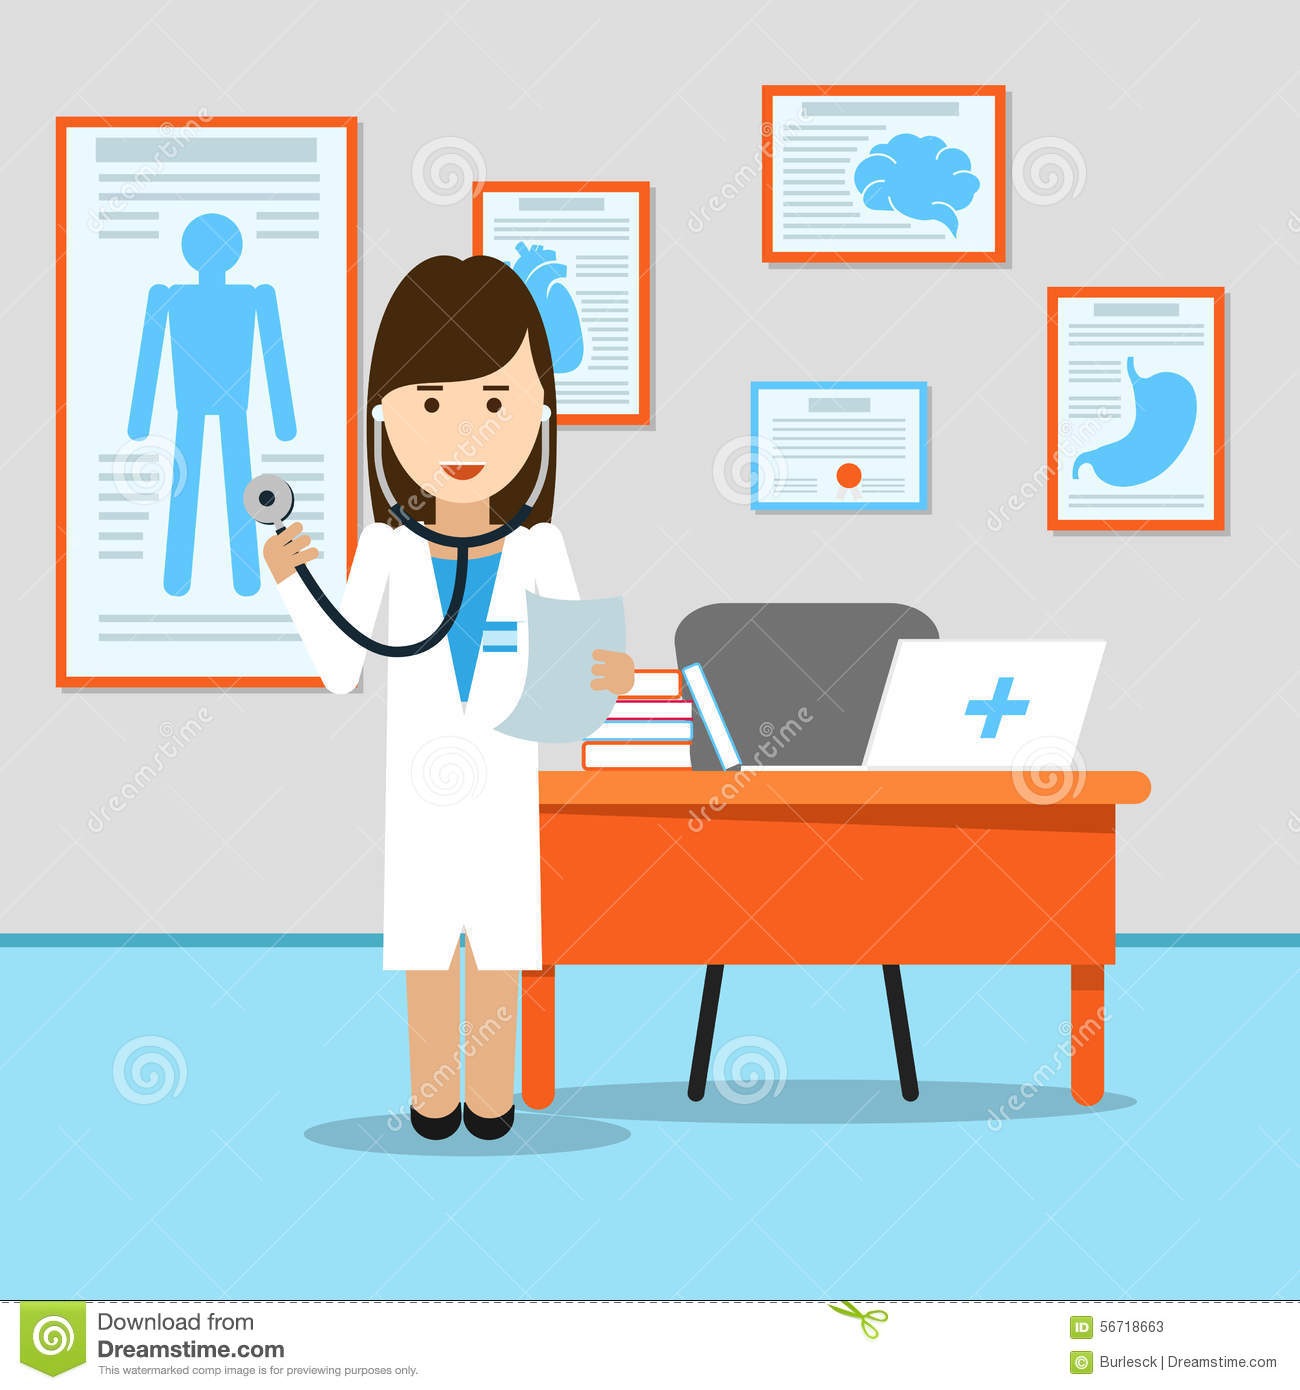 Medical doctor at the table. Medicine and hospital, stethoscope and